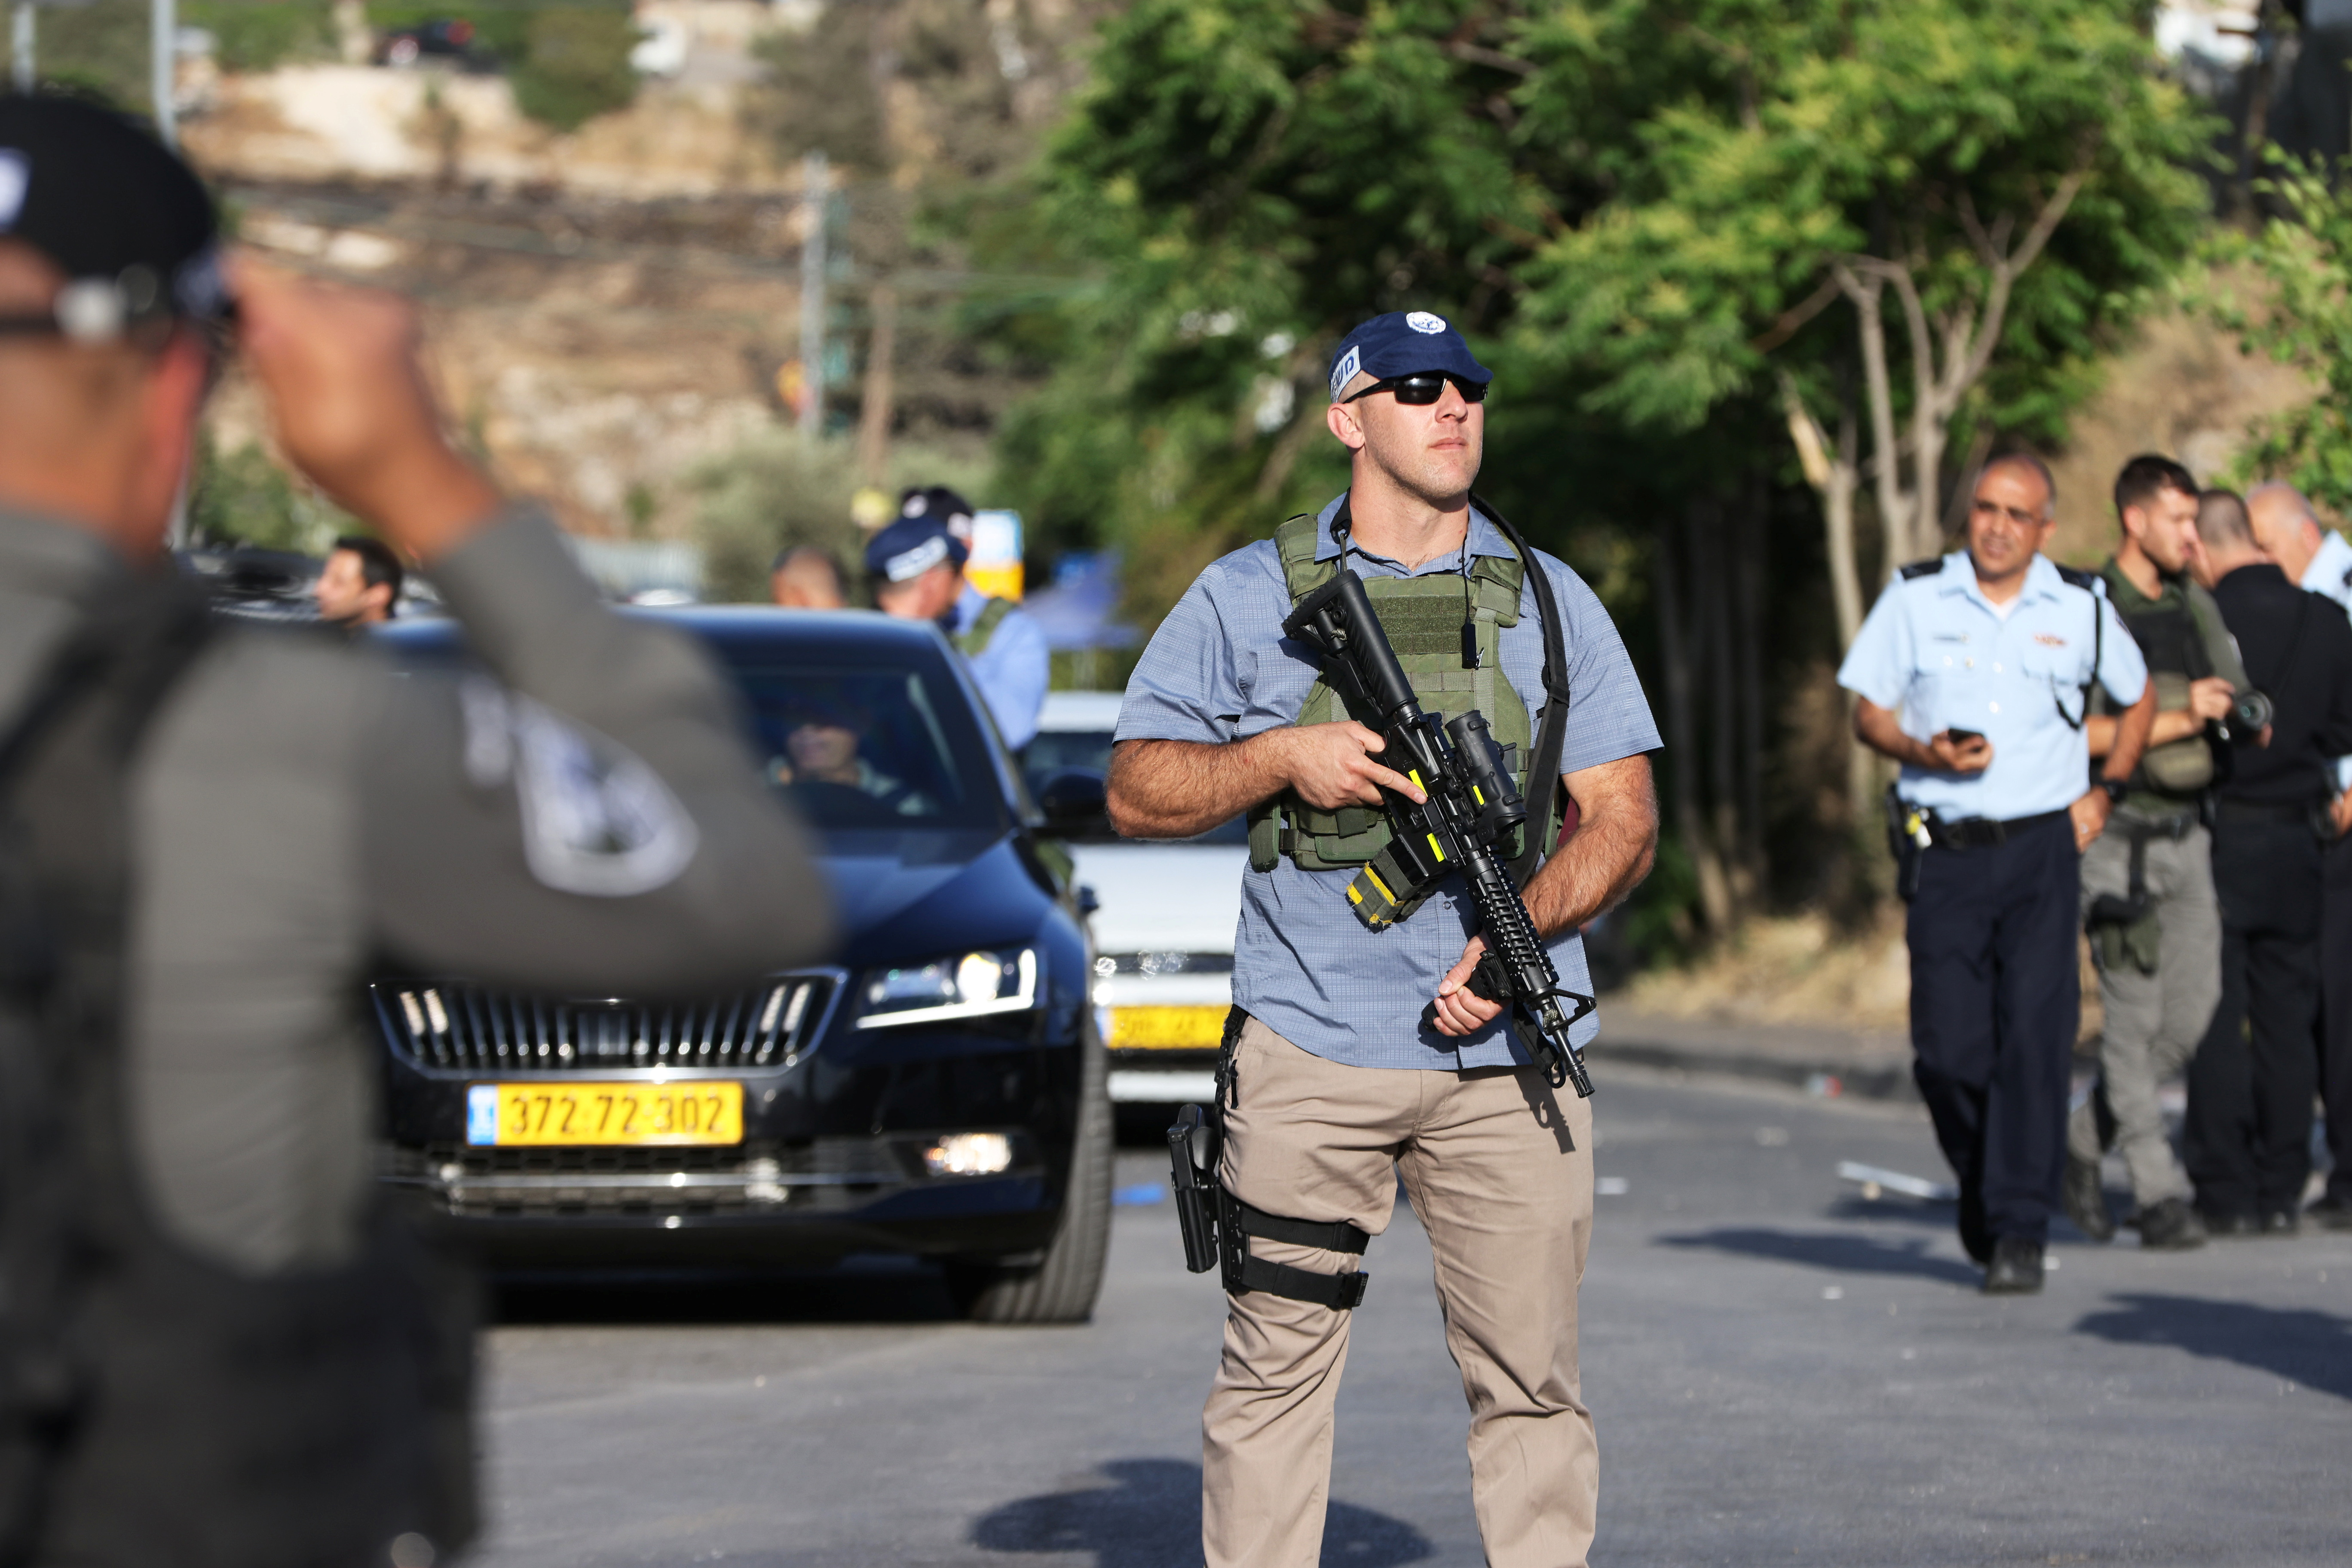 An Israeli security force member stands guard at the scene of what police said was a suspected car-ramming attack, at the entrance to Sheikh Jarrah neighbourhood of East Jerusalem May 16, 2021. REUTERS/Ronen Zvulun